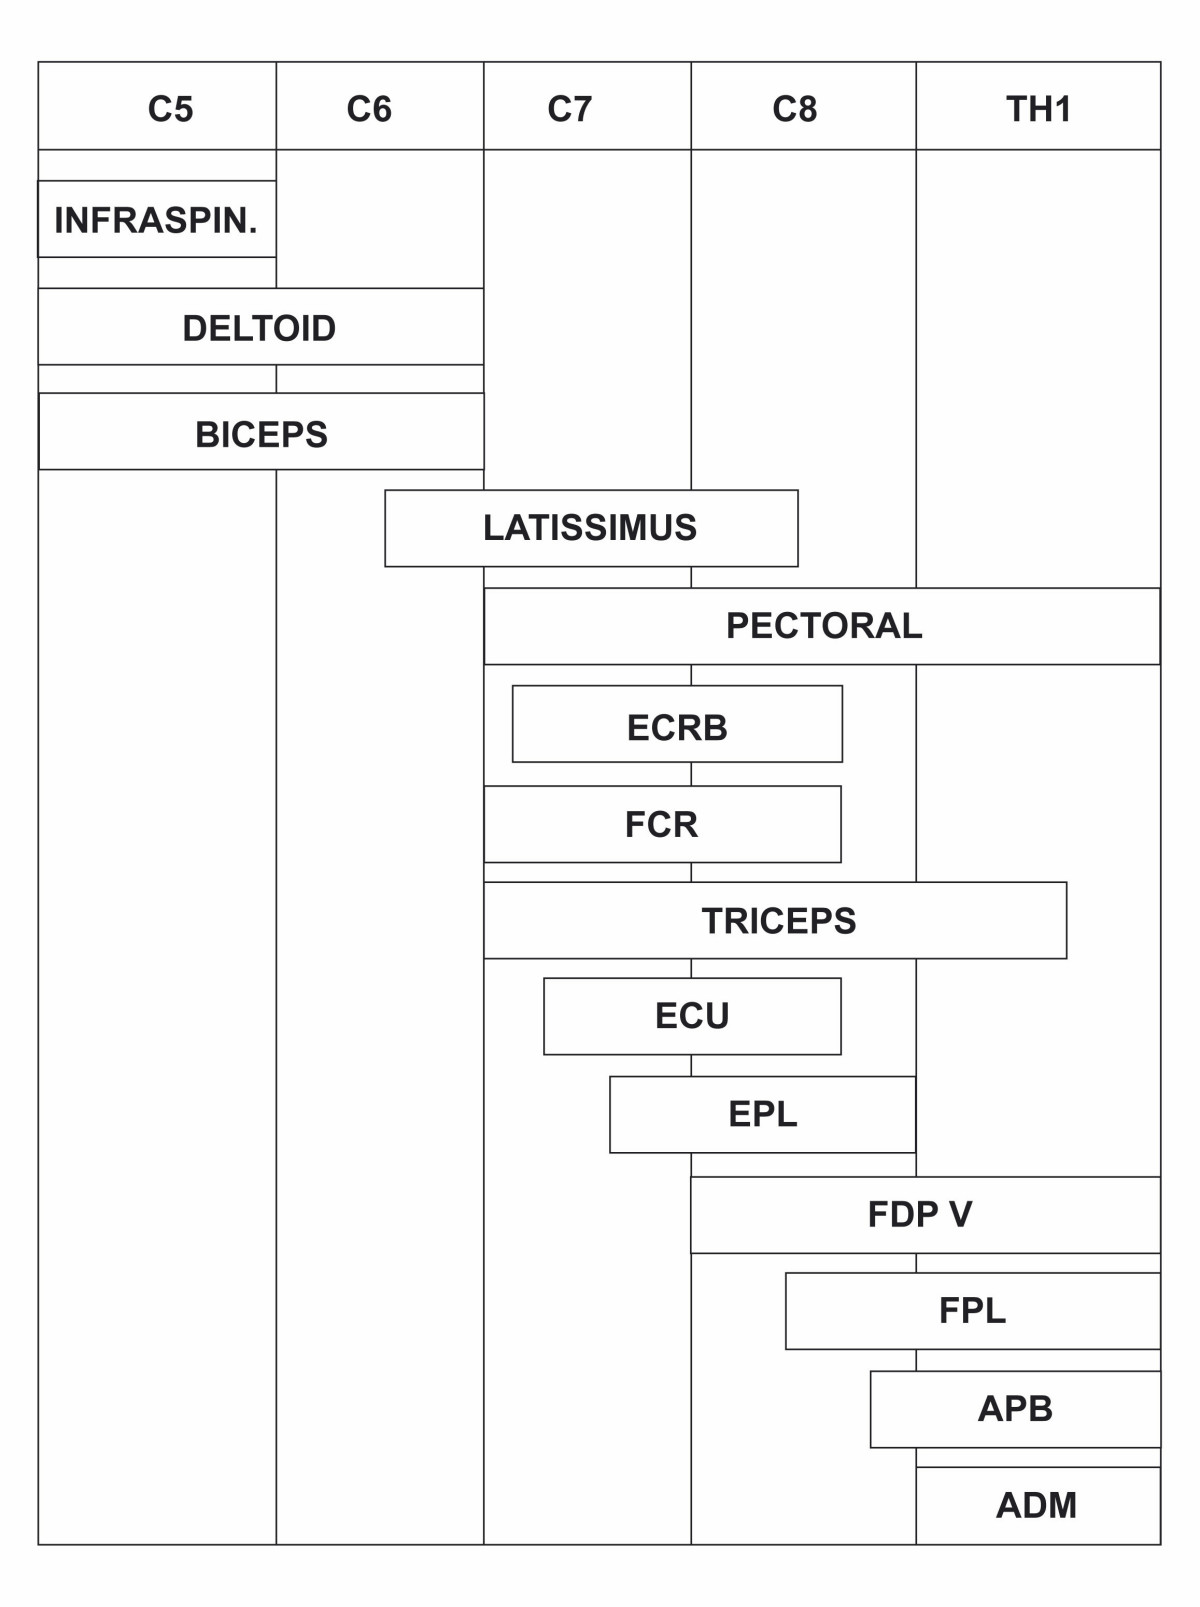 https://static-content.springer.com/image/art%3A10.1186%2F1471-2377-6-8/MediaObjects/12883_2005_Article_8_Fig2_HTML.jpg